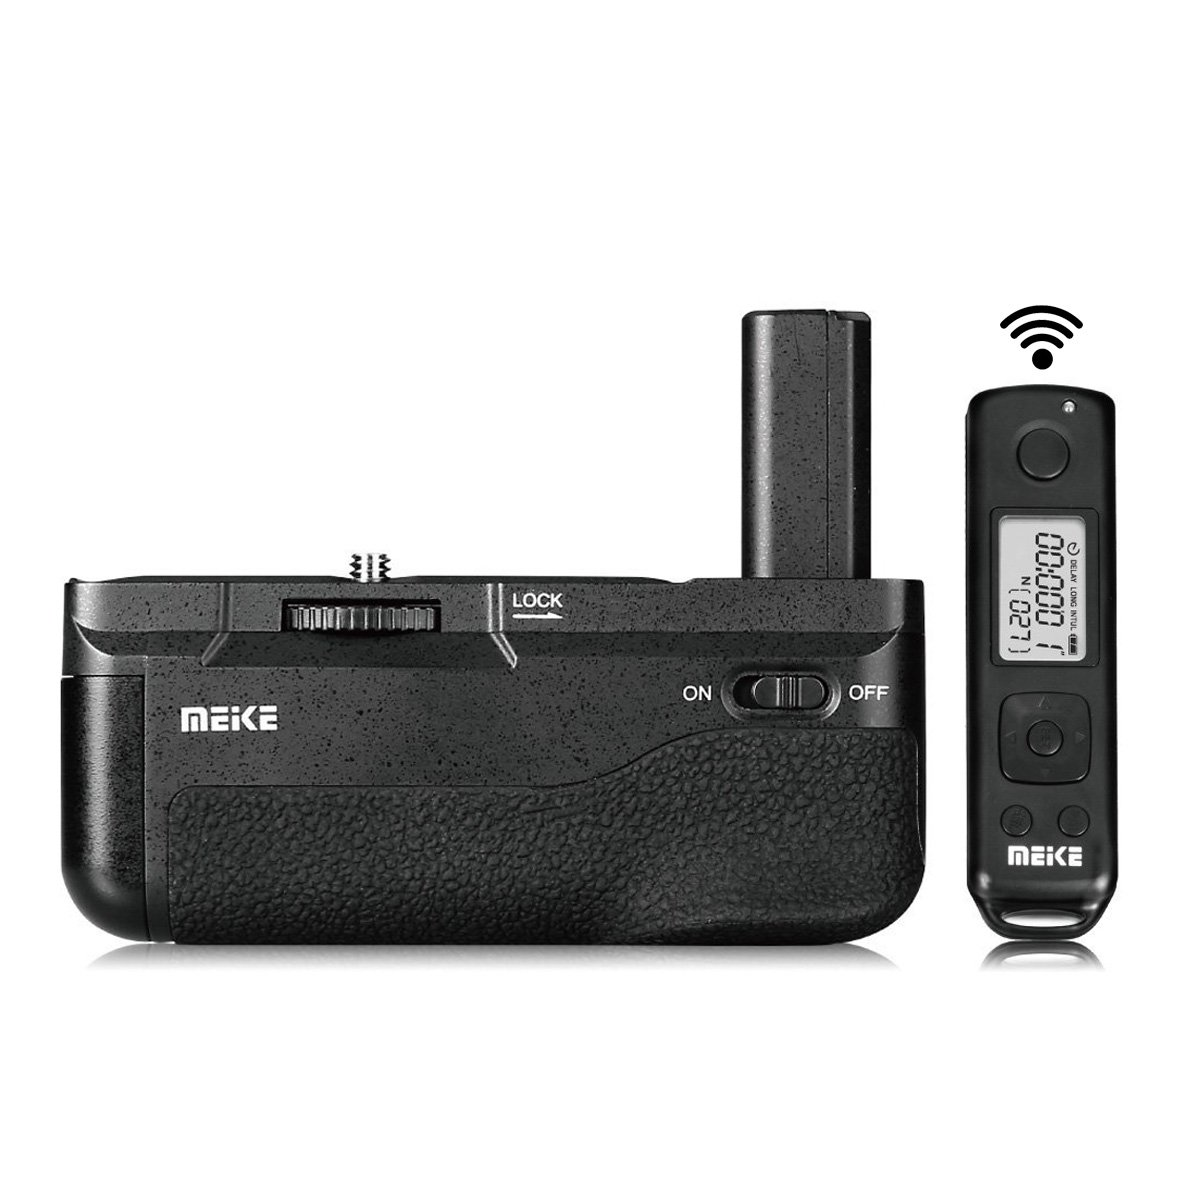 Meike MK-A6500 Pro Battery Grip Built-in 2.4GHZ Remote Controller Vertical-Shooting Function Compatible for Sony A6500 Camera Mcoplus Cloth